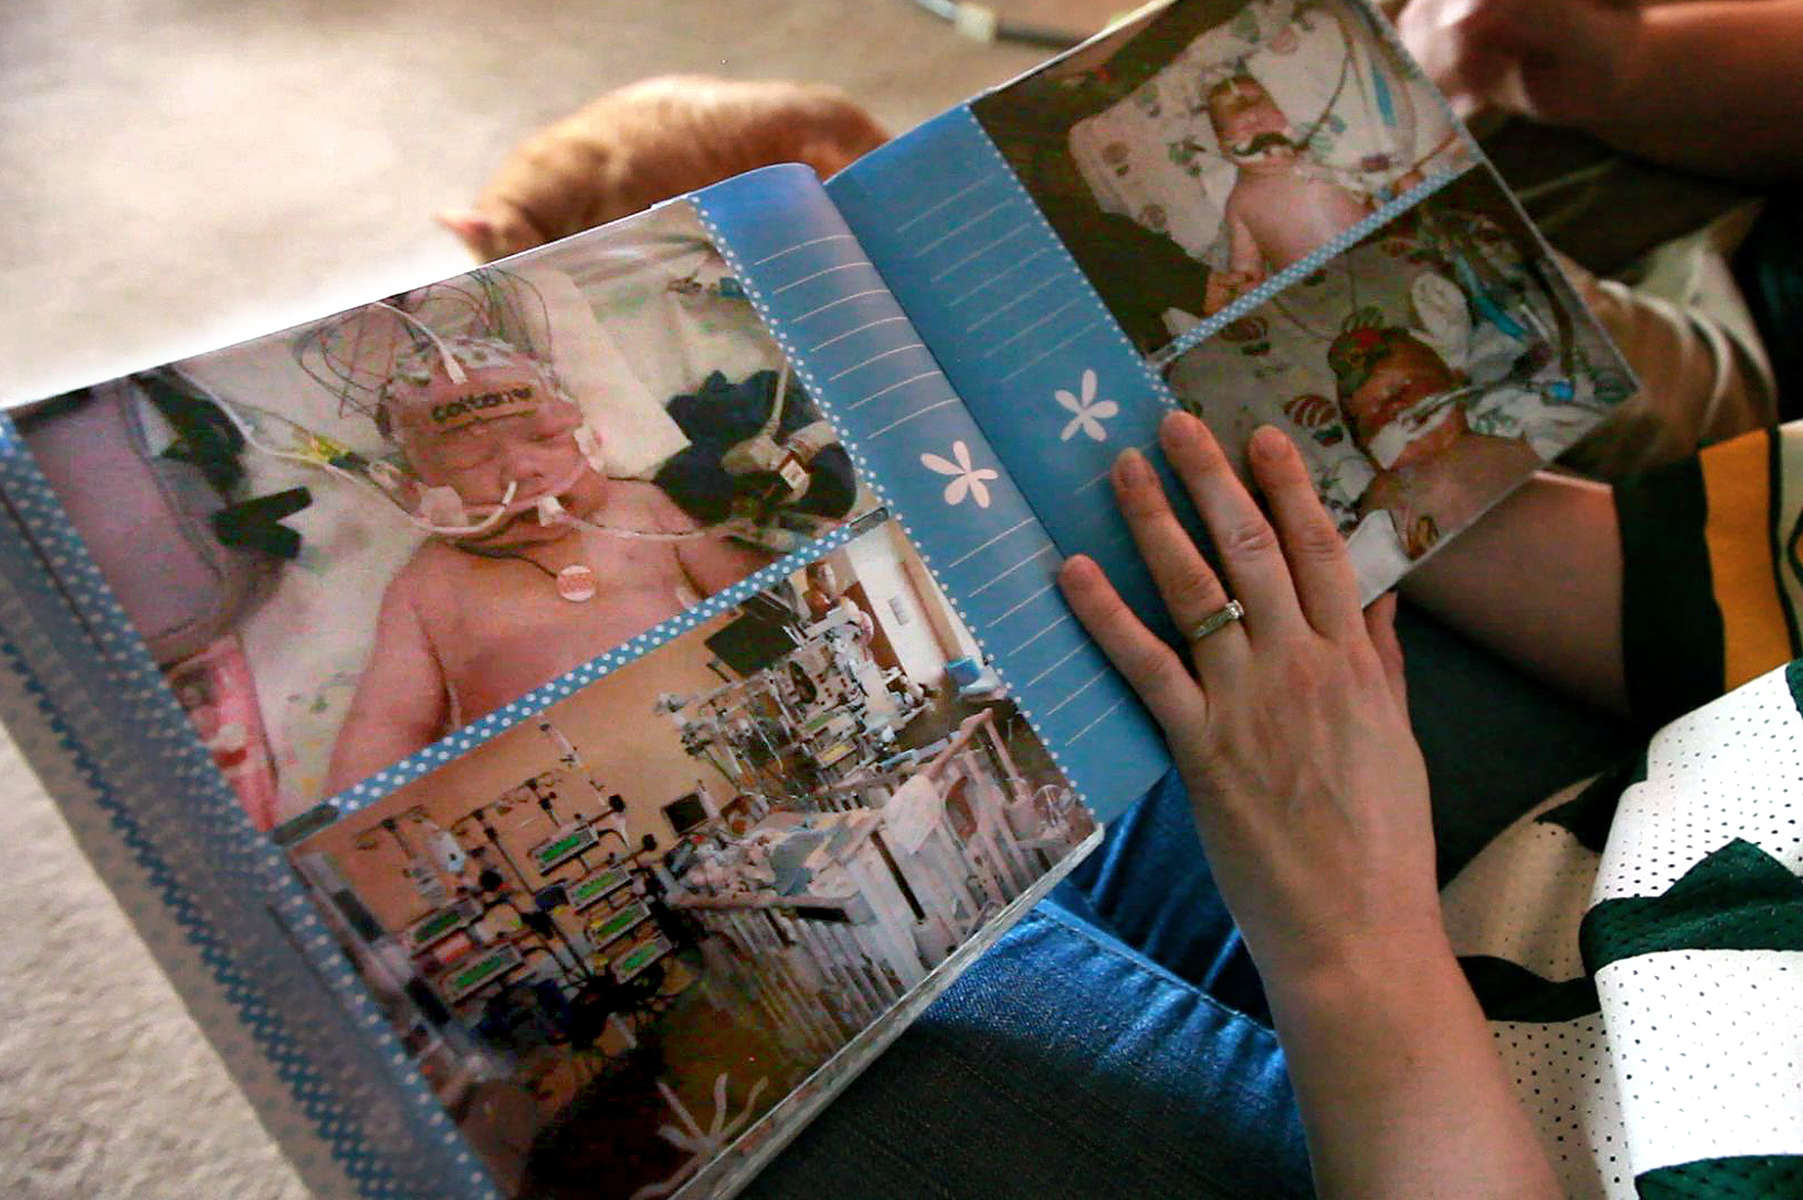 Colton's mother Karen looks at a photo album from his first weeks of life, filled with heartbreaking photos of a very ill child. Less than a day after being discharged from the hospital following his birth, Colton was lethargic and blood began pouring from his nose. His heart stopped and his body was flooded with toxic ammonia levels. Doctor's didn't think Colton could survive, but tried a cooling technique to protect his brain and heart while he underwent dialysis. Had the hospital followed procedure, Colton's metabolic disorder could have been diagnosed before it threatened his life.